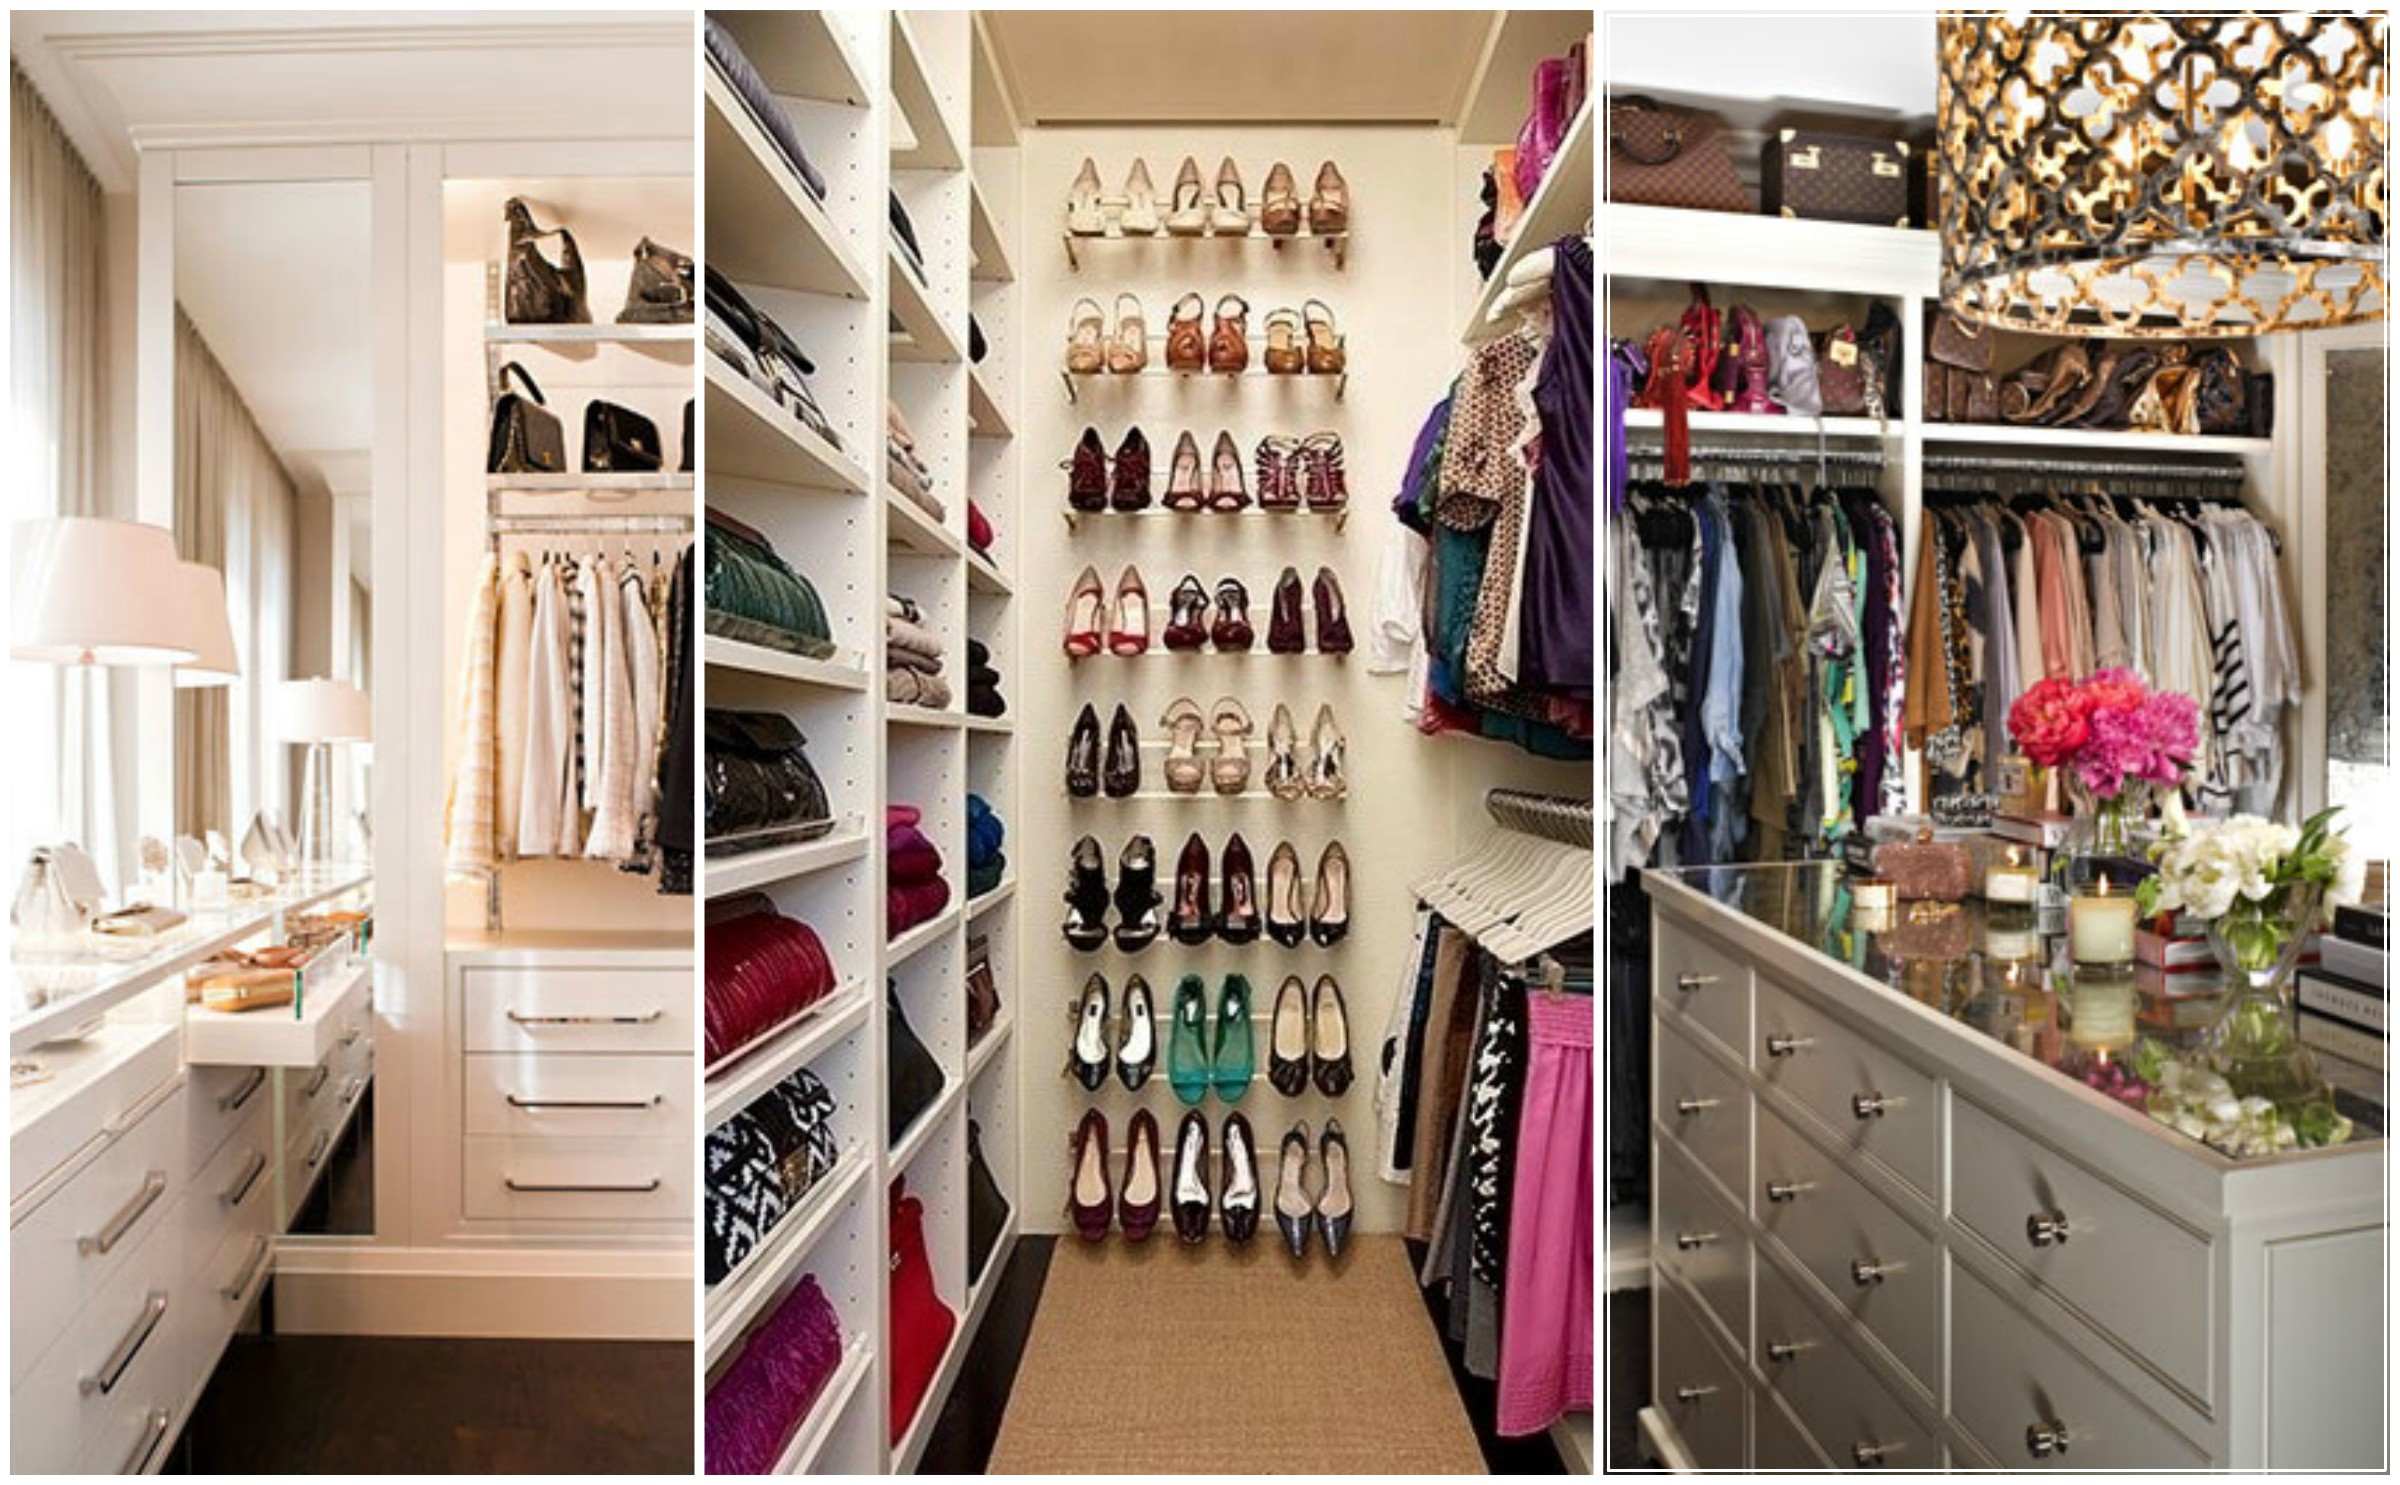 How to organize your closet for summer mystylespot for Organizing ideas for closets